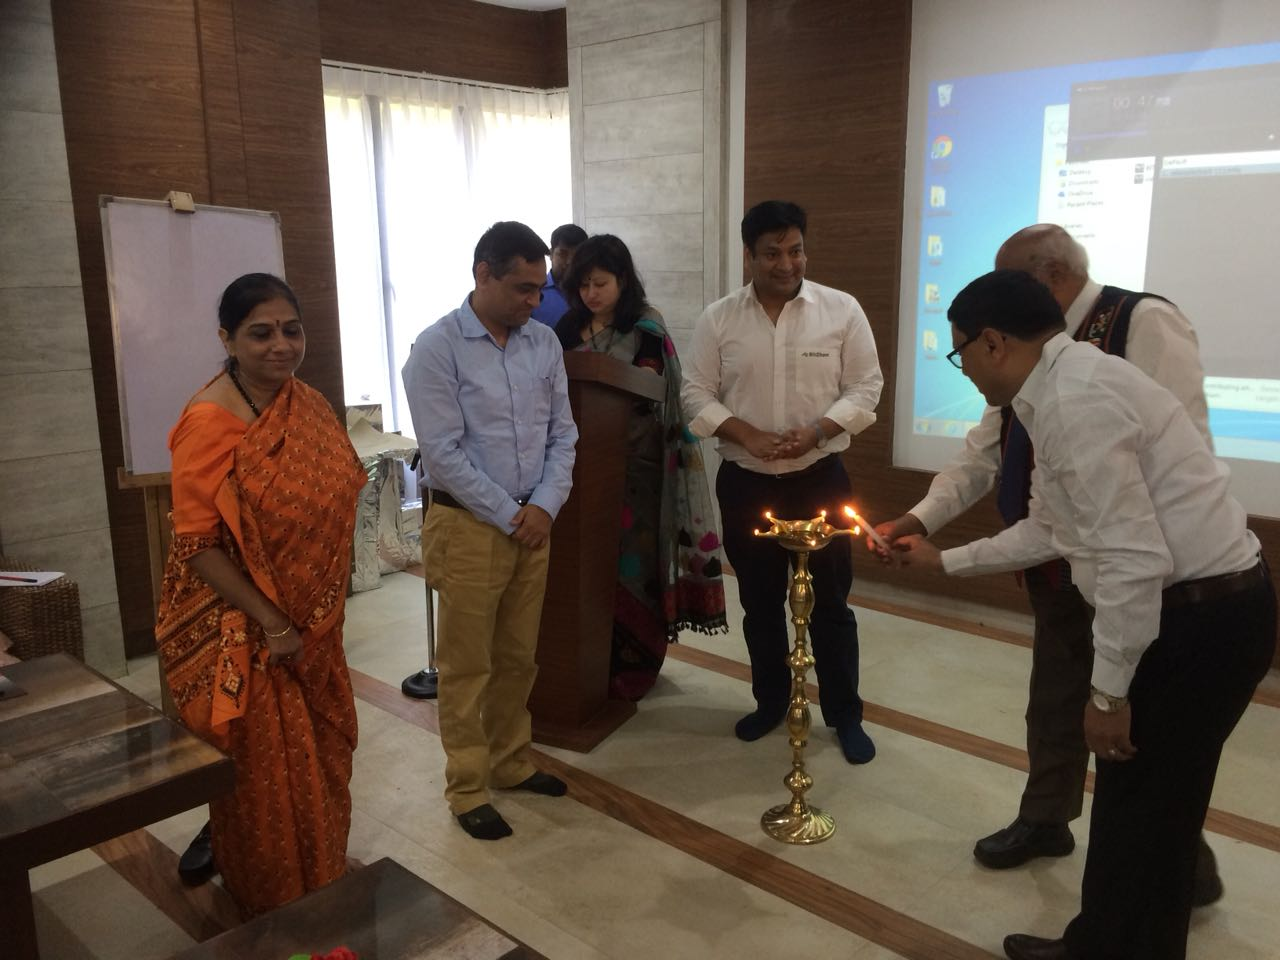 TDB participated in lighting the lamp during the inaugural session of Annual Business Plan Meet of BitChem on 4th April 2018 at Guwahati, Assam.